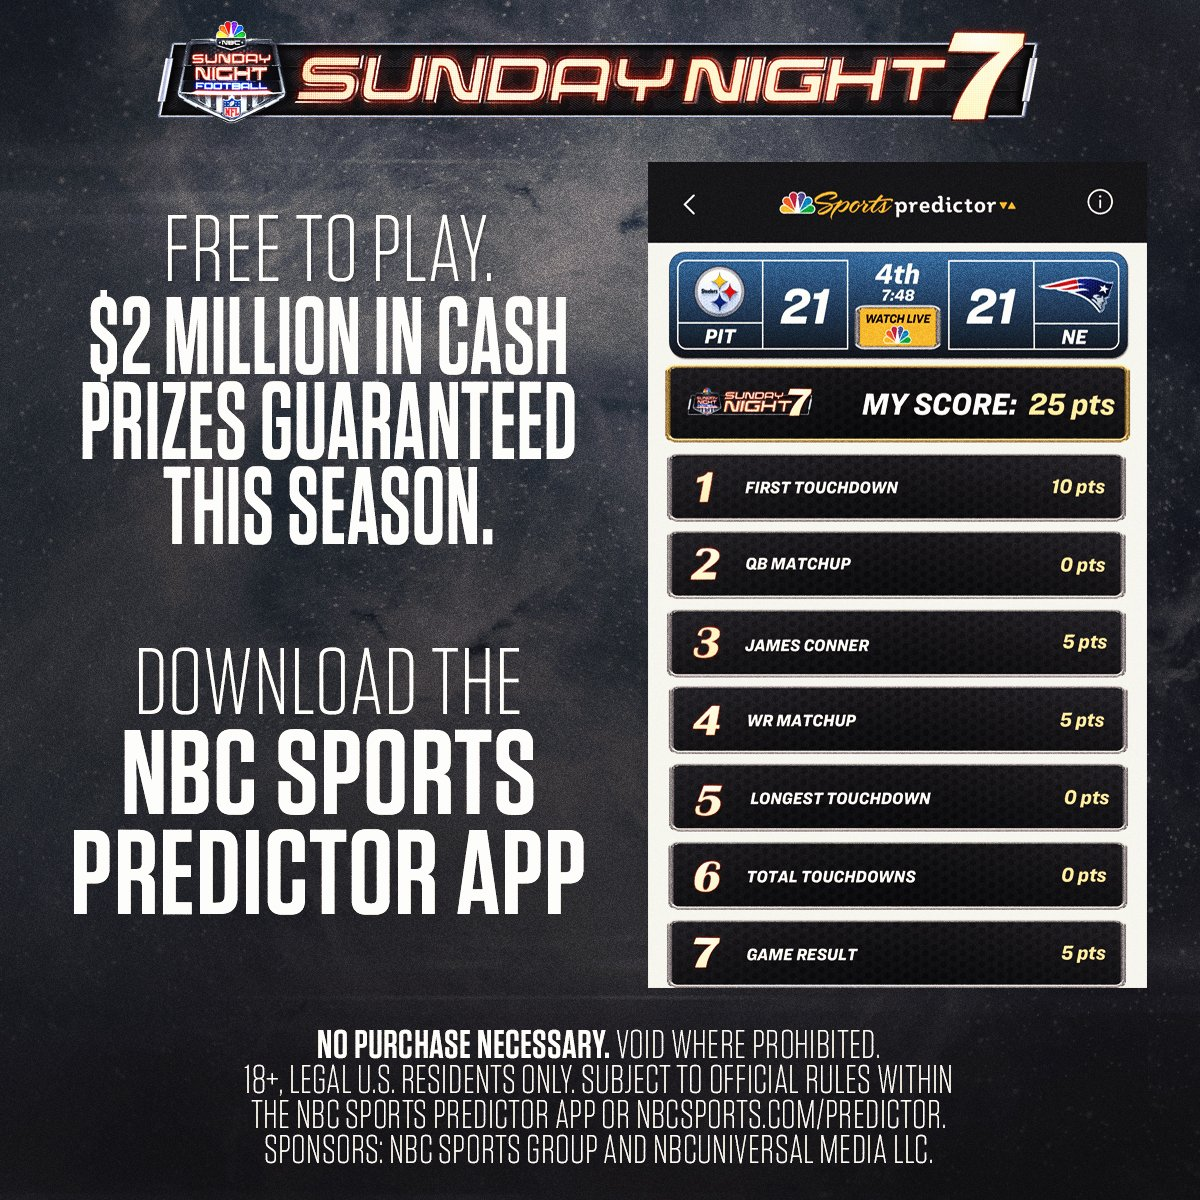 "7 SNF predictions each week. $2 million in guaranteed cash prizes this season. ""Sunday Night 7"" has arrived. Join the excitement now on the NBC Sports Predictor app: bit.ly/2Zx6uhz"